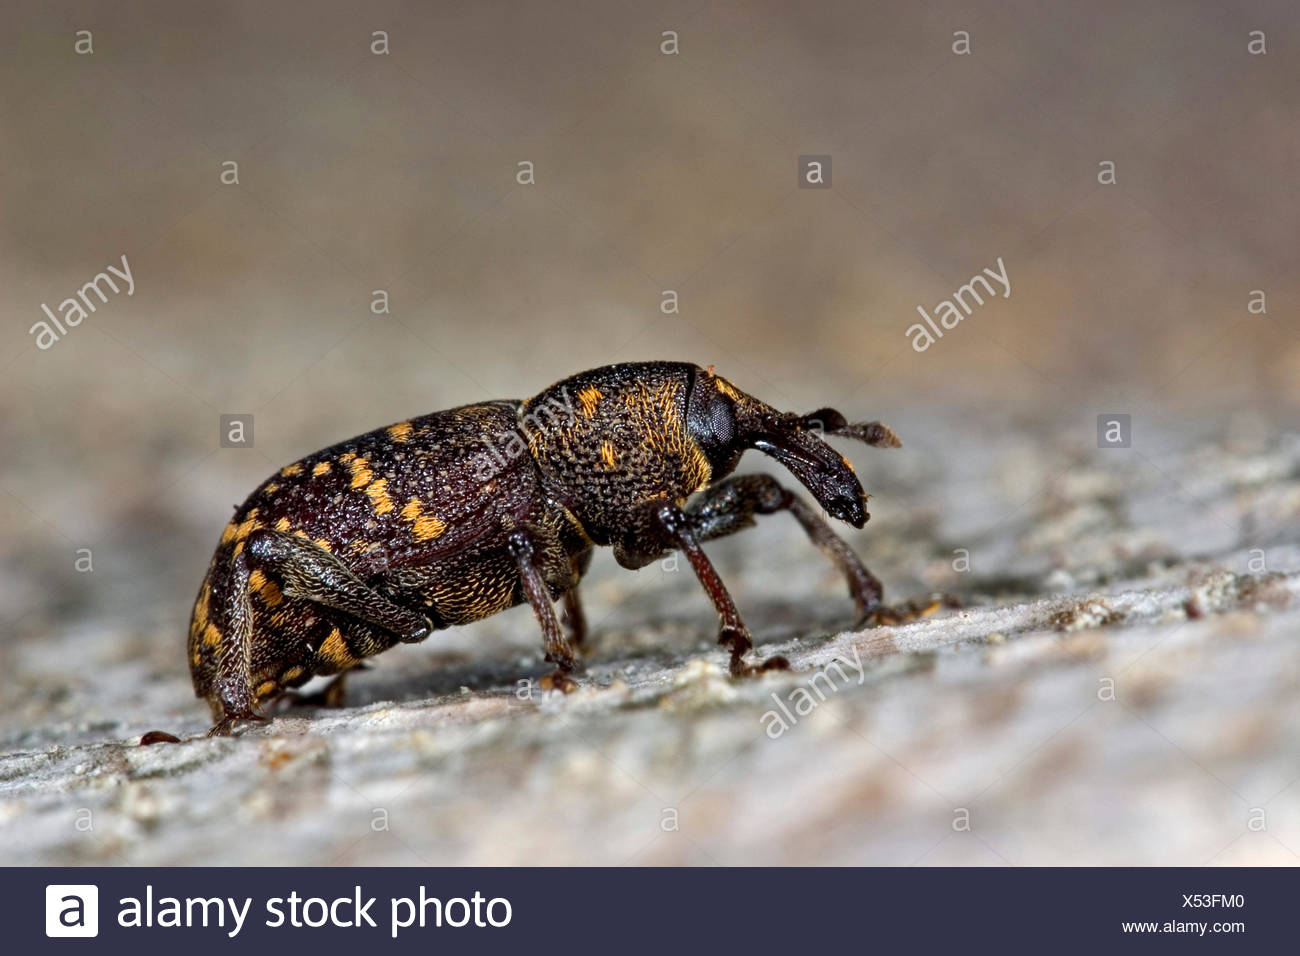 fir-tree weevil, pine weevil (Hylobius abietis), on a stone, Germany - Stock Image